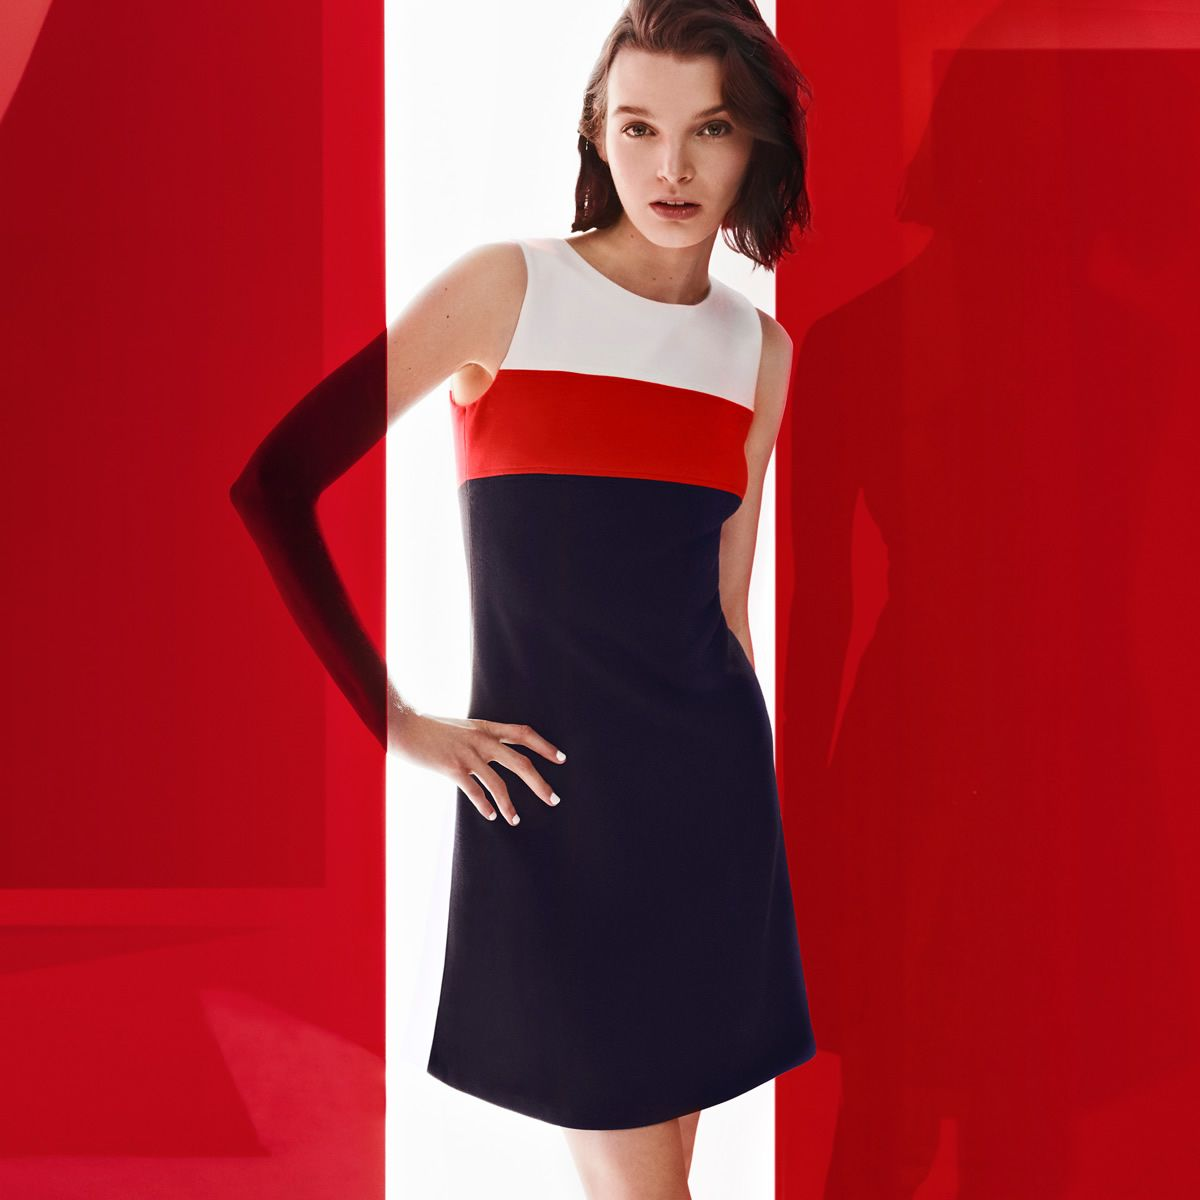 cdd7b04a8fe Tommy Hilfiger Dresses for Women - Macy s